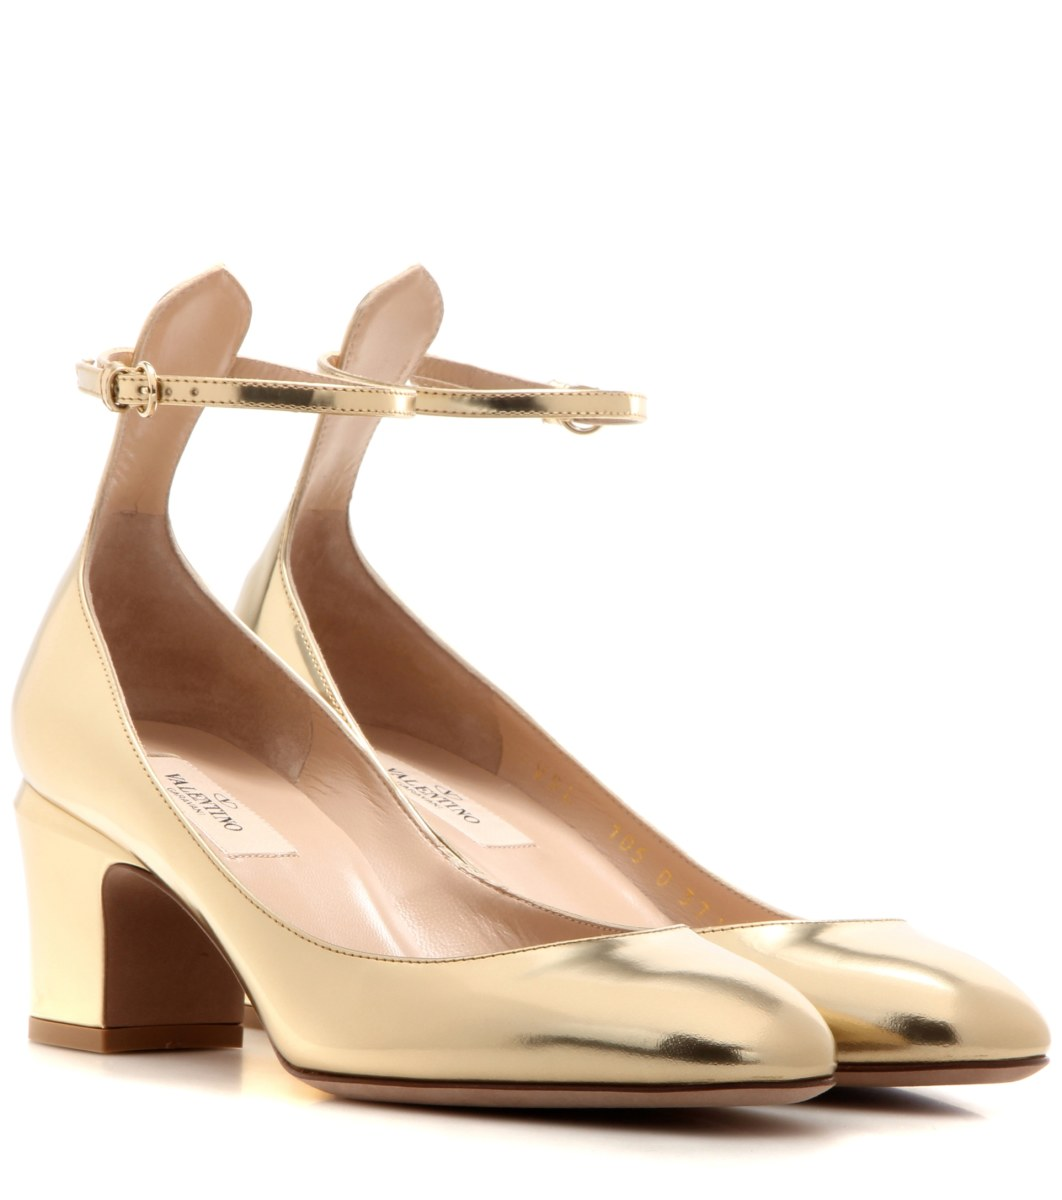 004e2e1726a7 The Valentino Shoes Tyler Can t Stop Buying on Sale - Fashionista